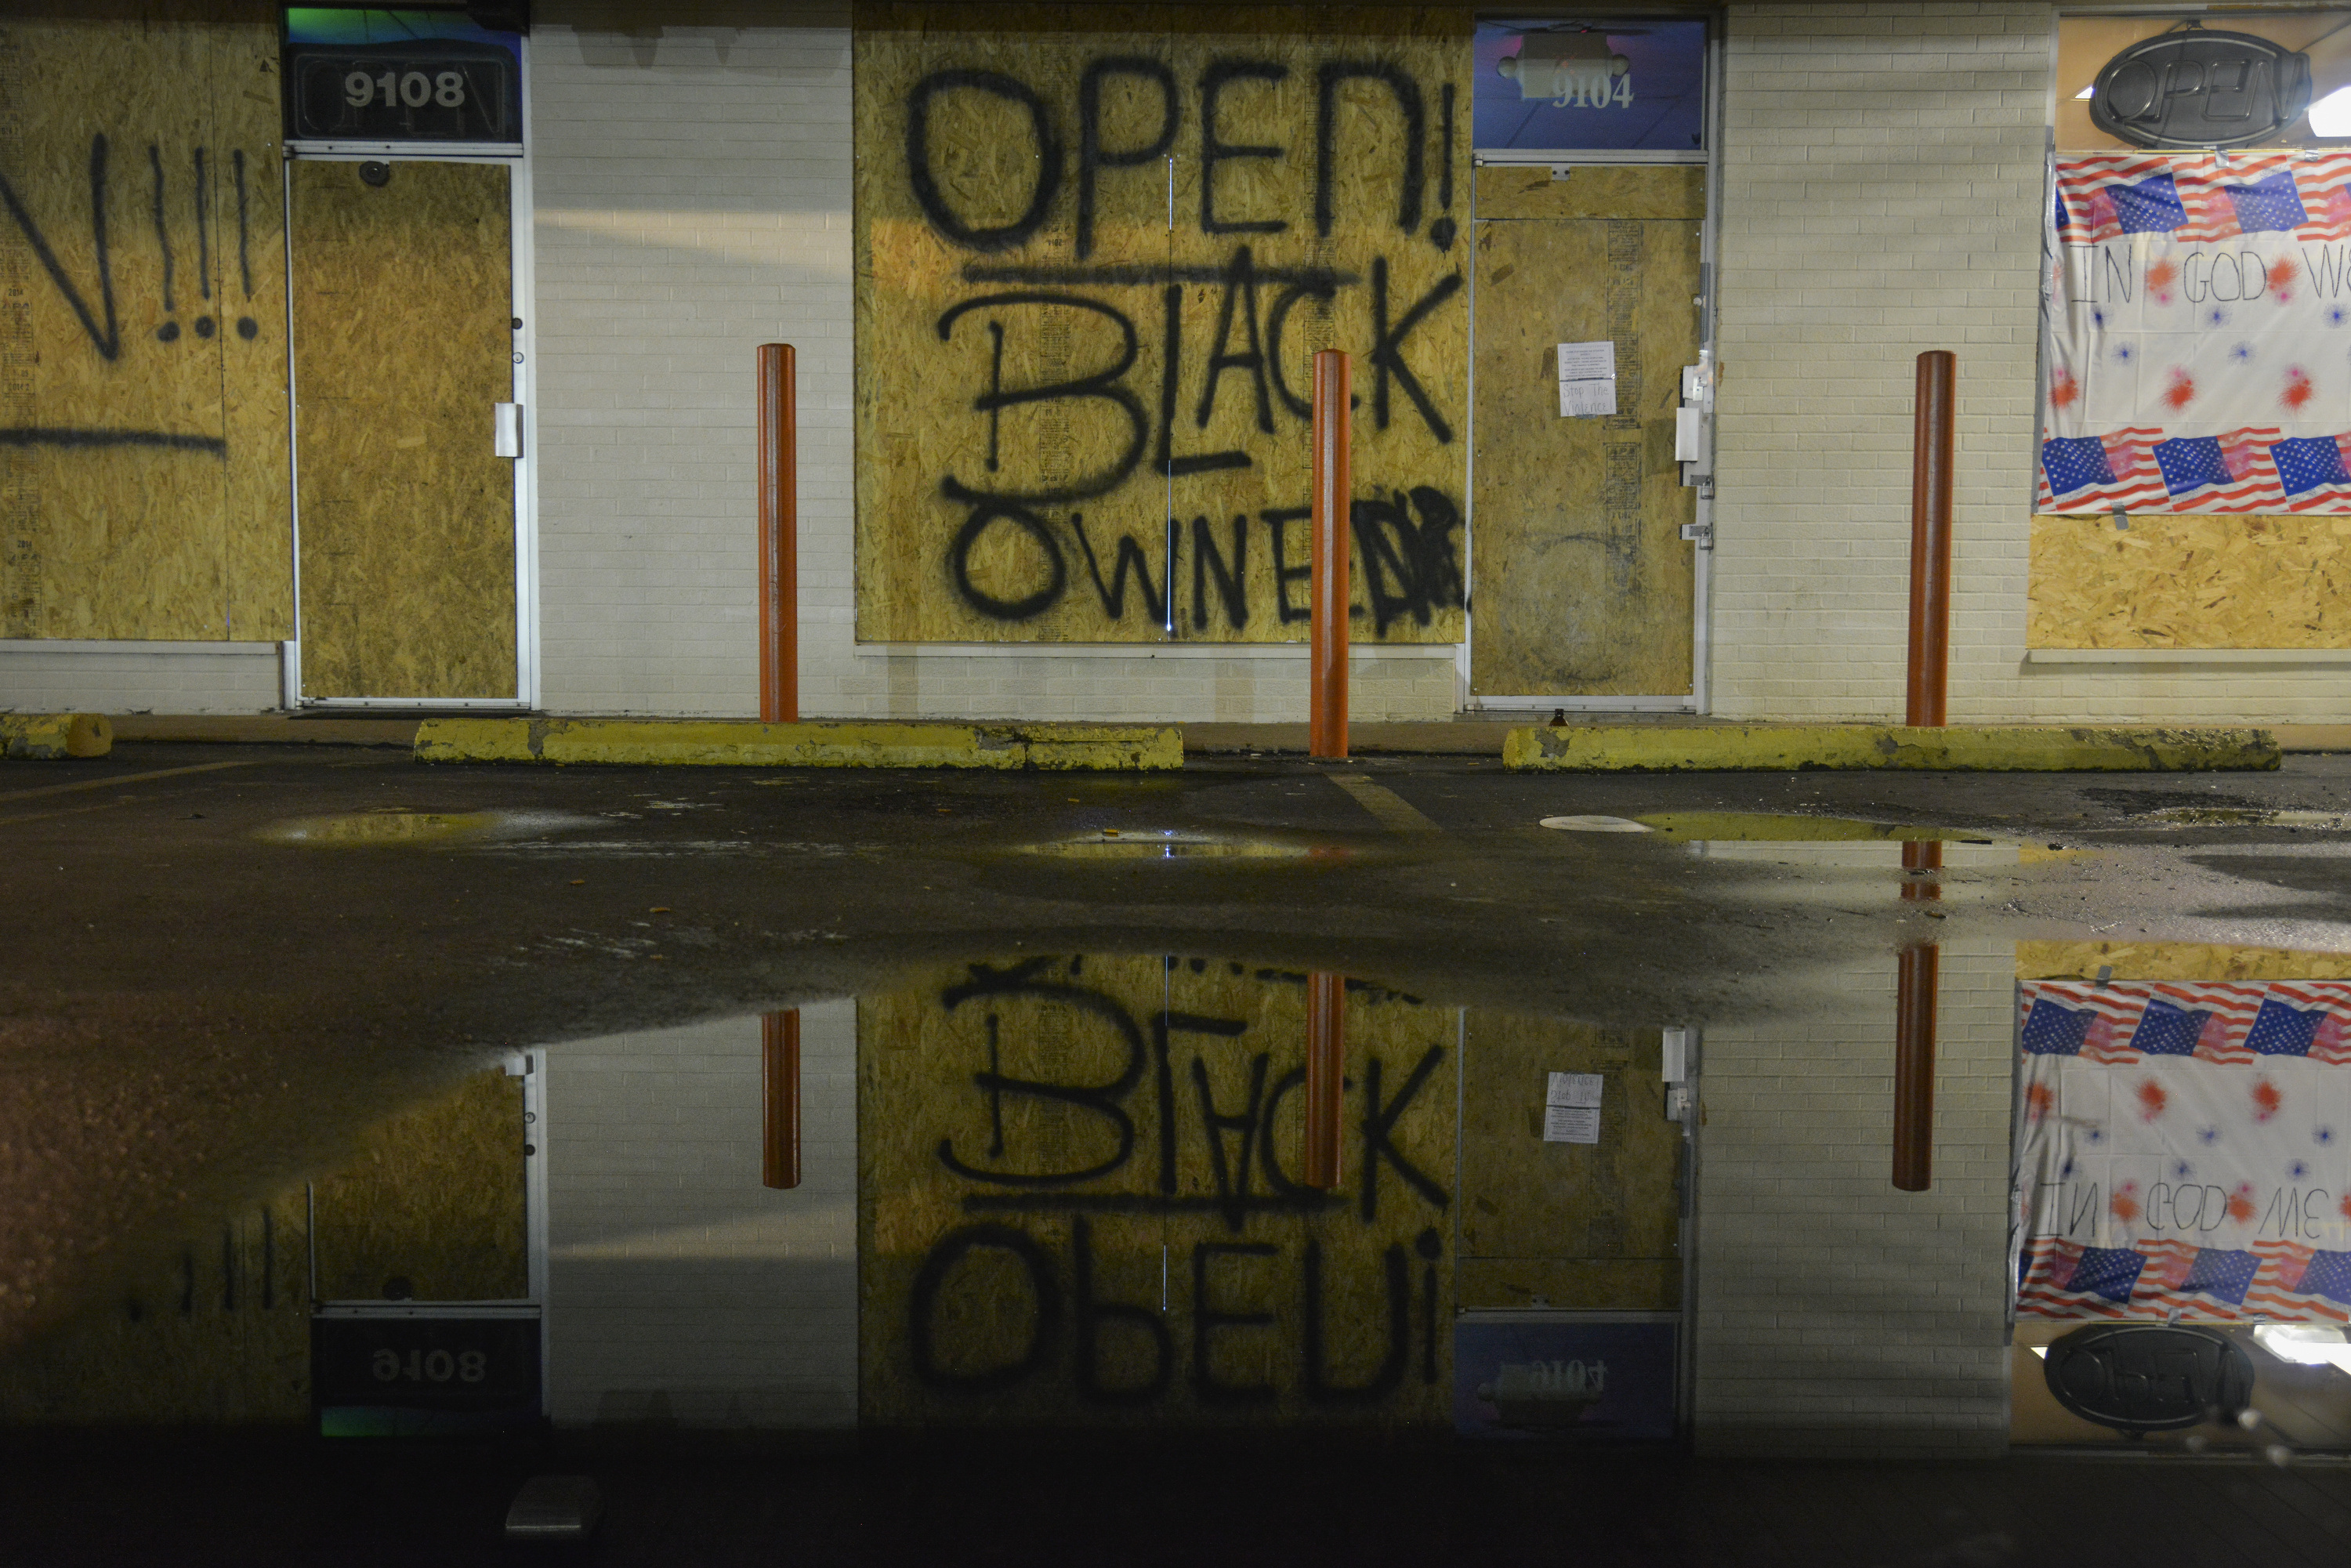 A small clump of businesses are boarded up after a couple of rounds of looting in a community roiled by the police shooting of an unarmed African American teen on Wednesday, August 21, 2014, in Ferguson, MO.